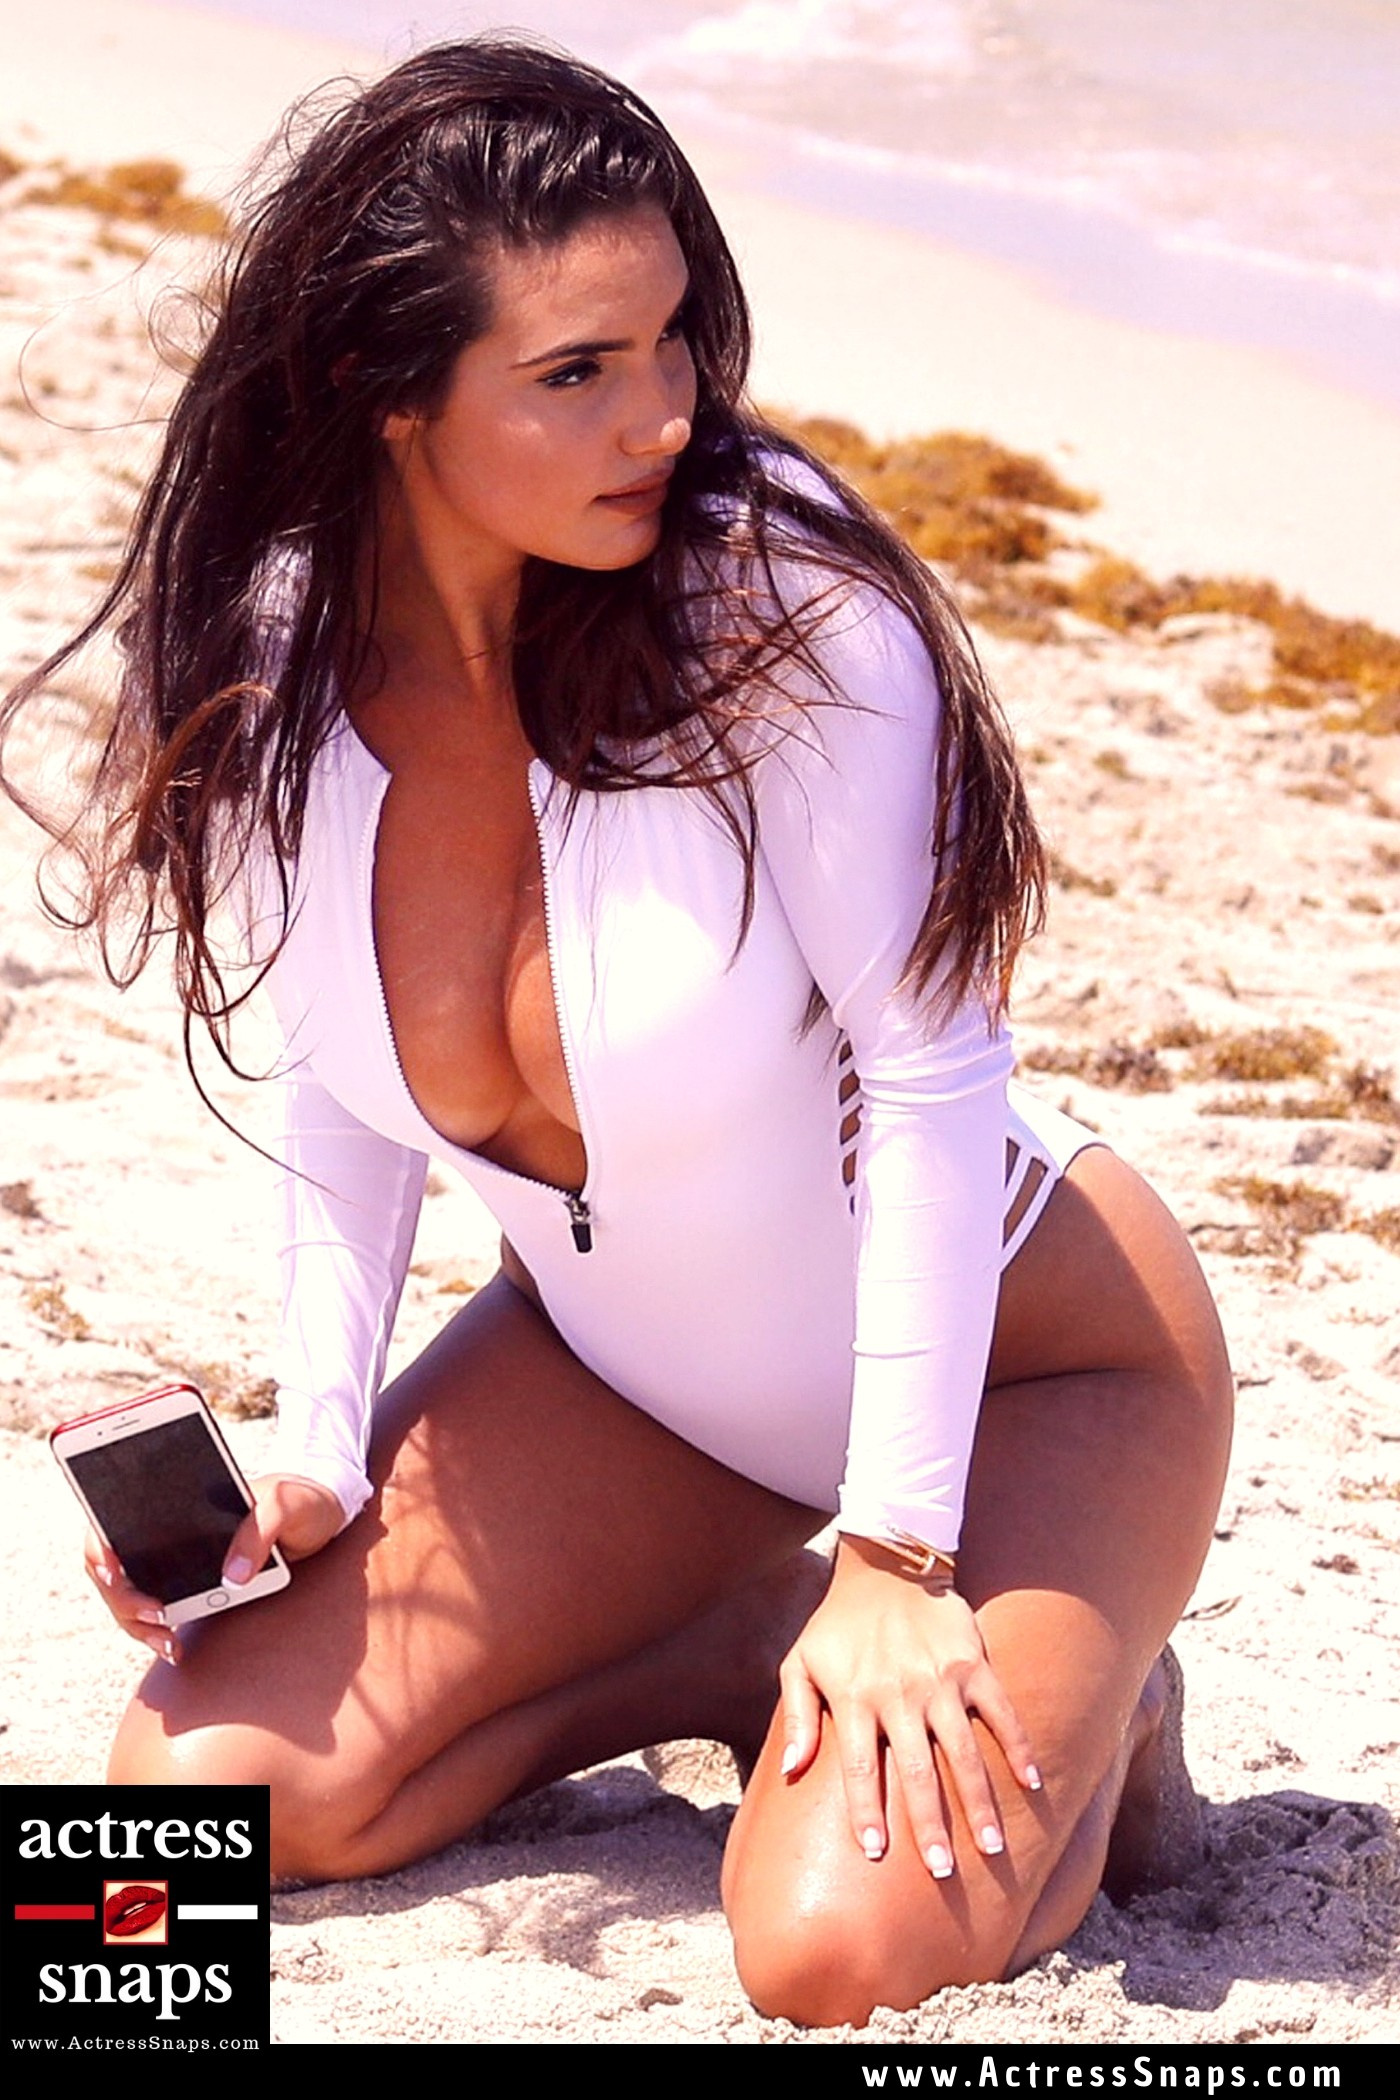 Tao Wickrath - Sexy in White Swimsuit - Sexy Actress Pictures | Hot Actress Pictures - ActressSnaps.com